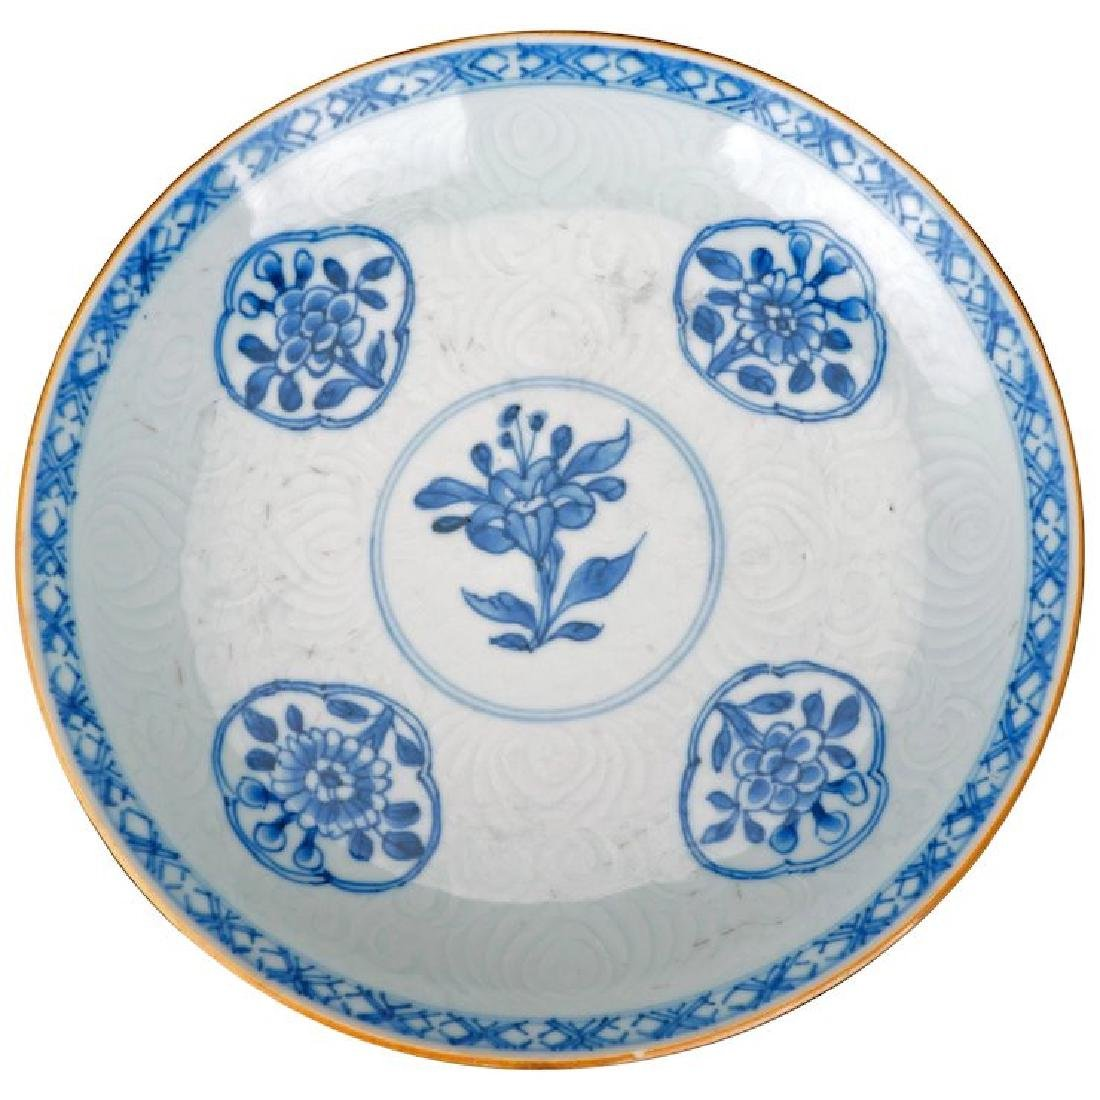 Kangxi blue and white porcelain plate with incised